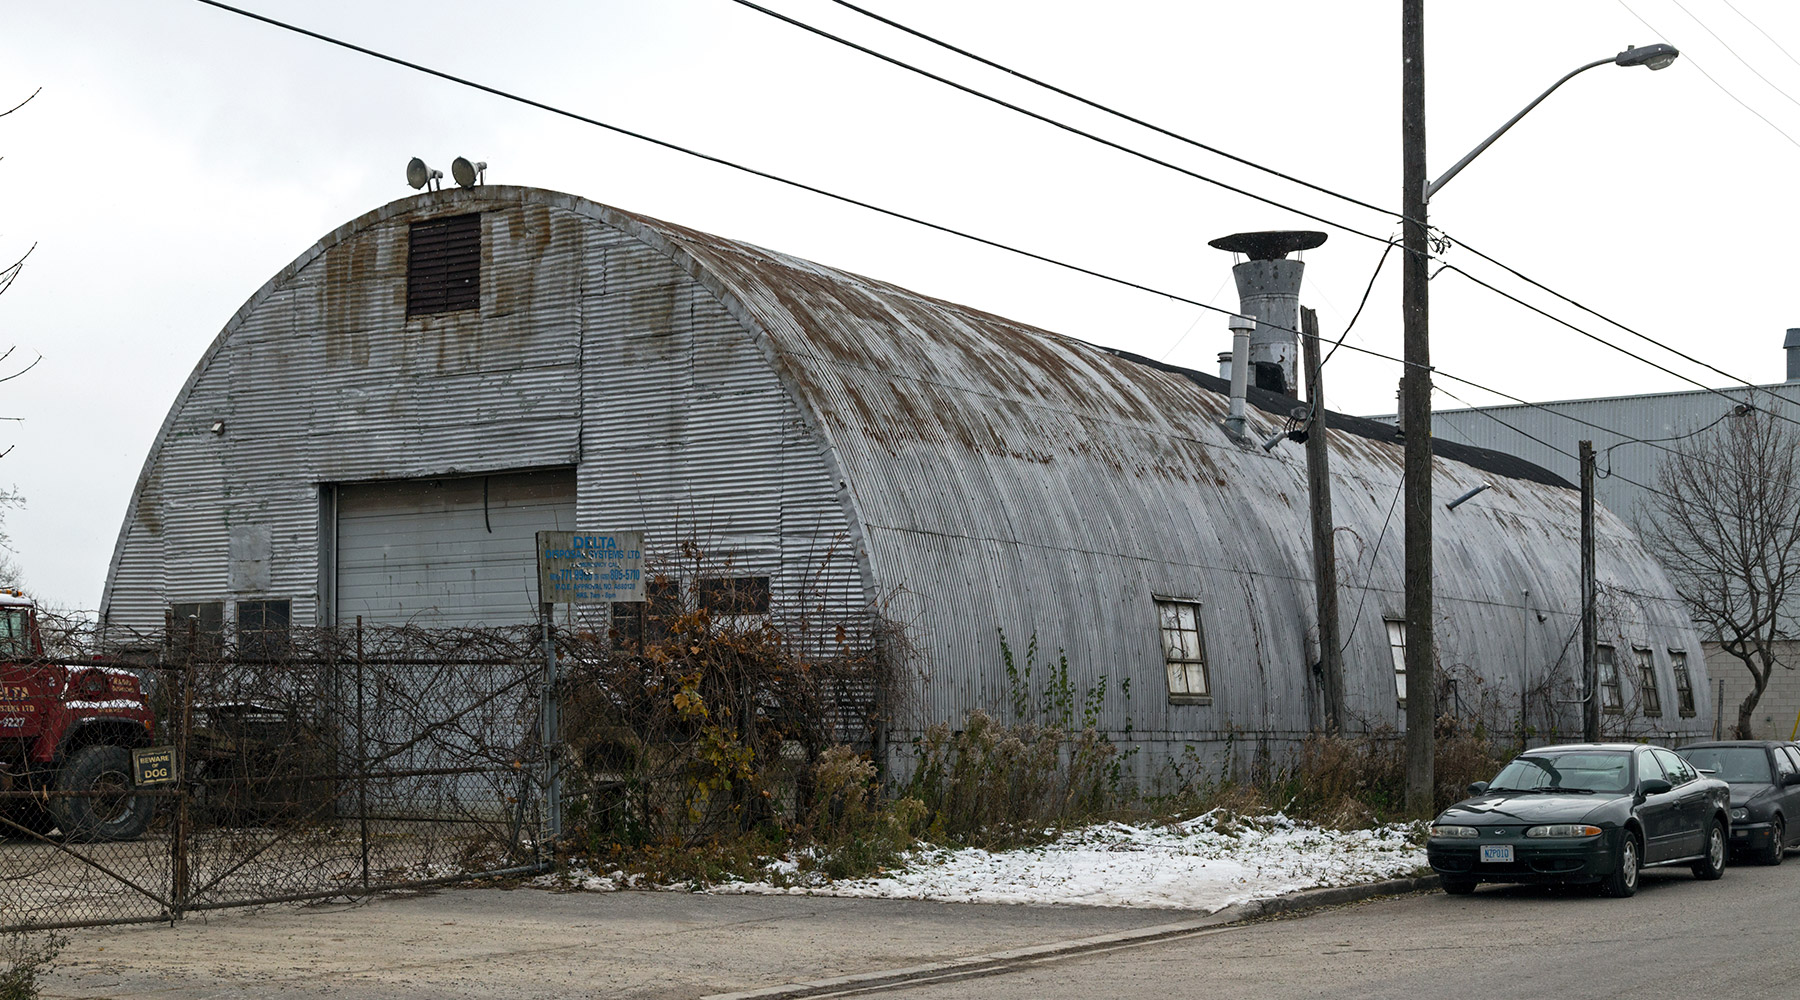 20141121. A 1940s 40'x100' Quonset Hut on Canvarco Rd in the